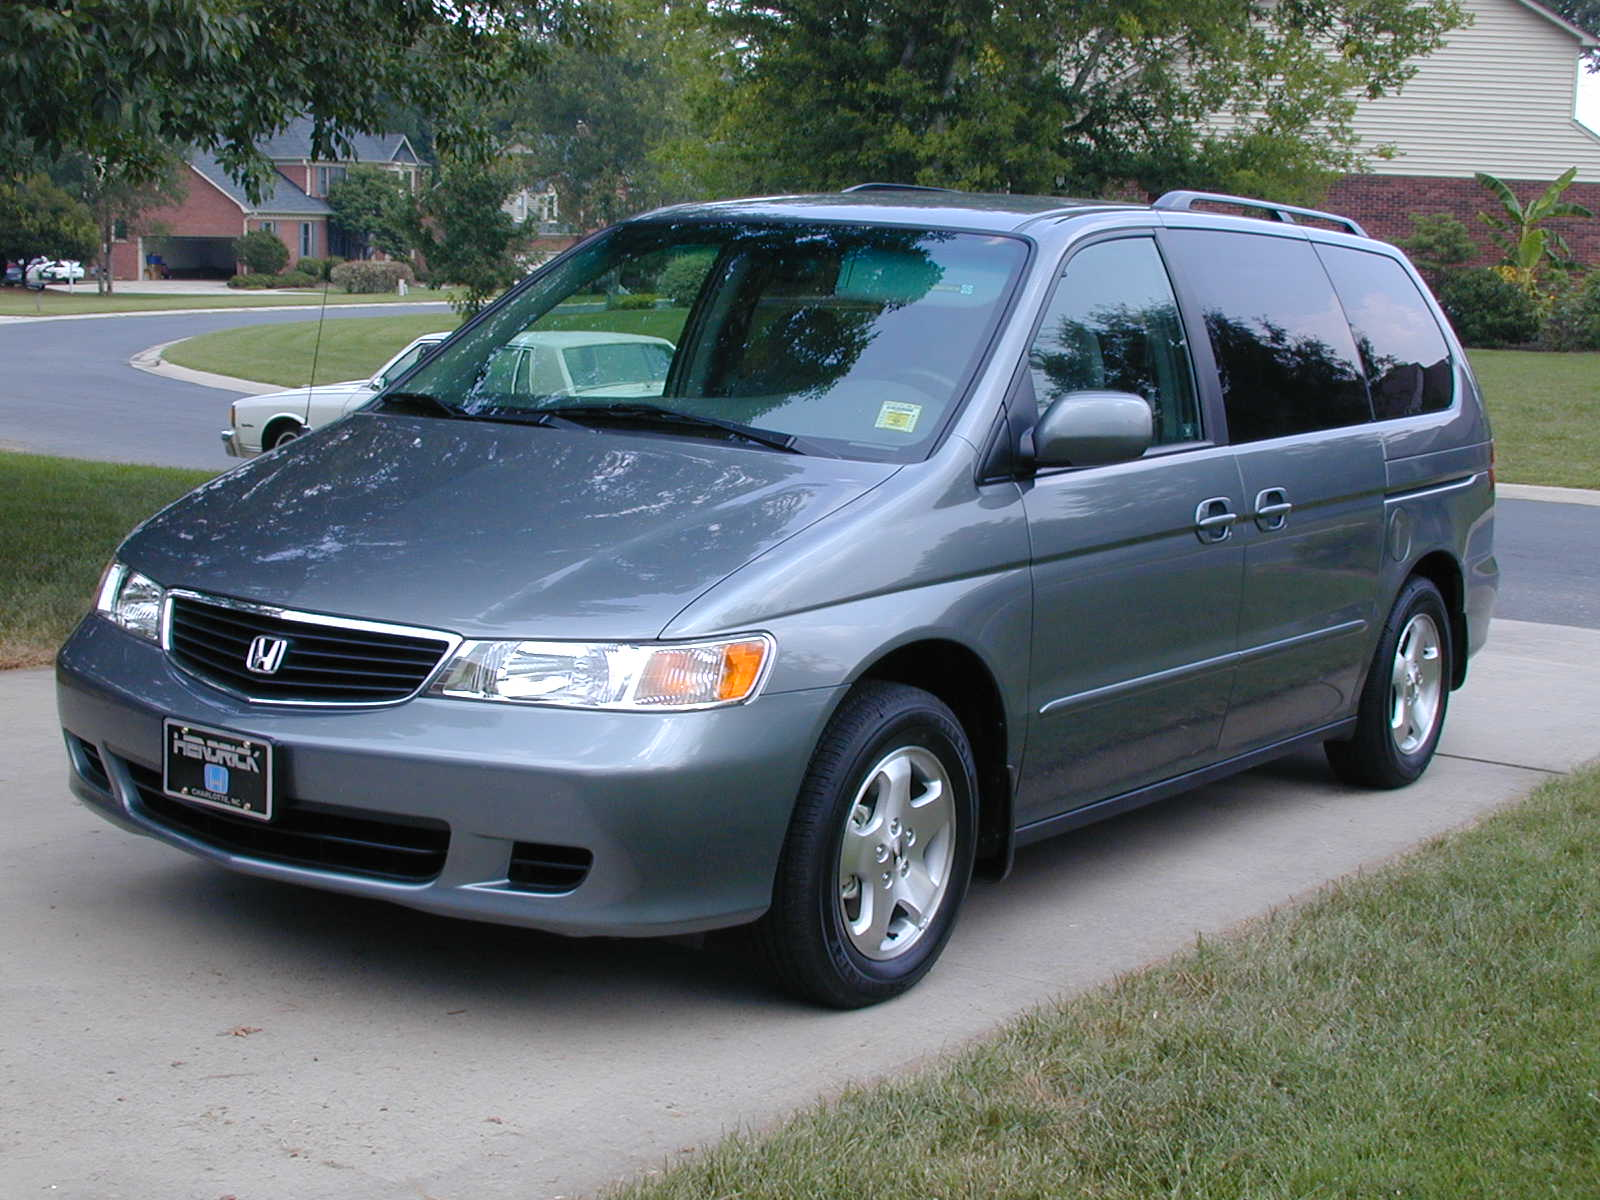 2001 honda odyssey pictures cargurus. Black Bedroom Furniture Sets. Home Design Ideas